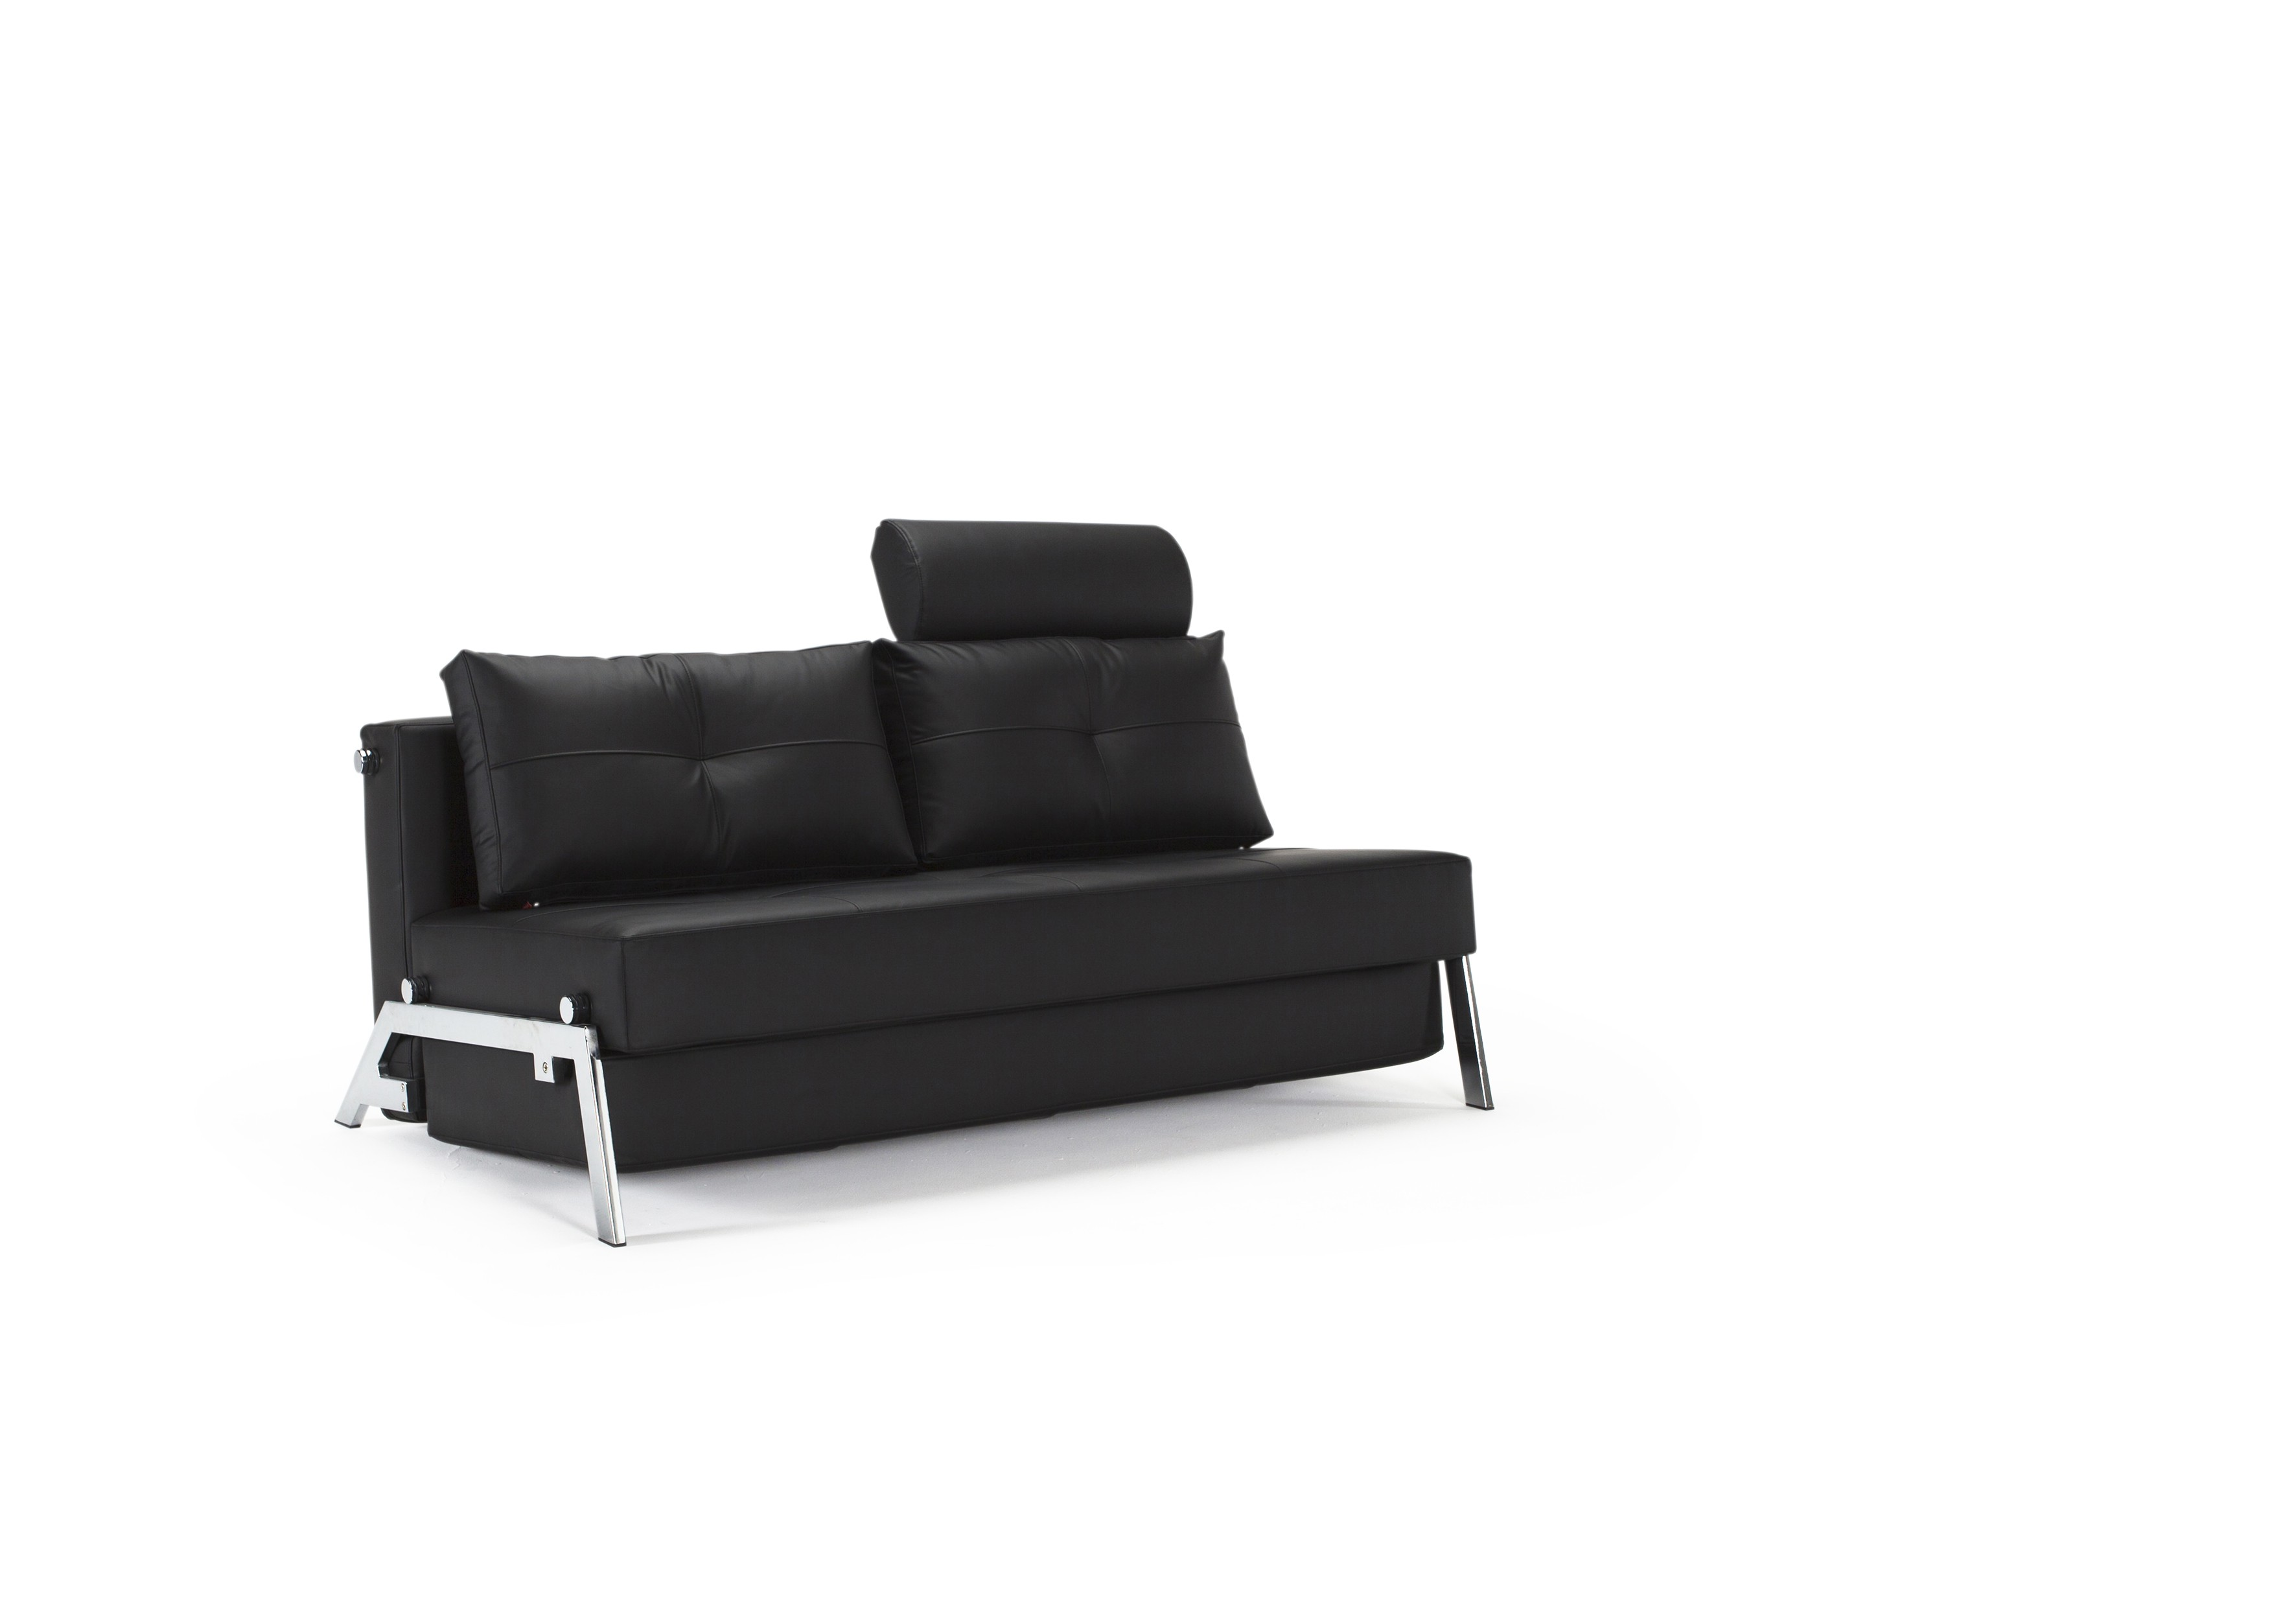 Cubed Deluxe Sofa Bed Queen Size Black Leather Textile By